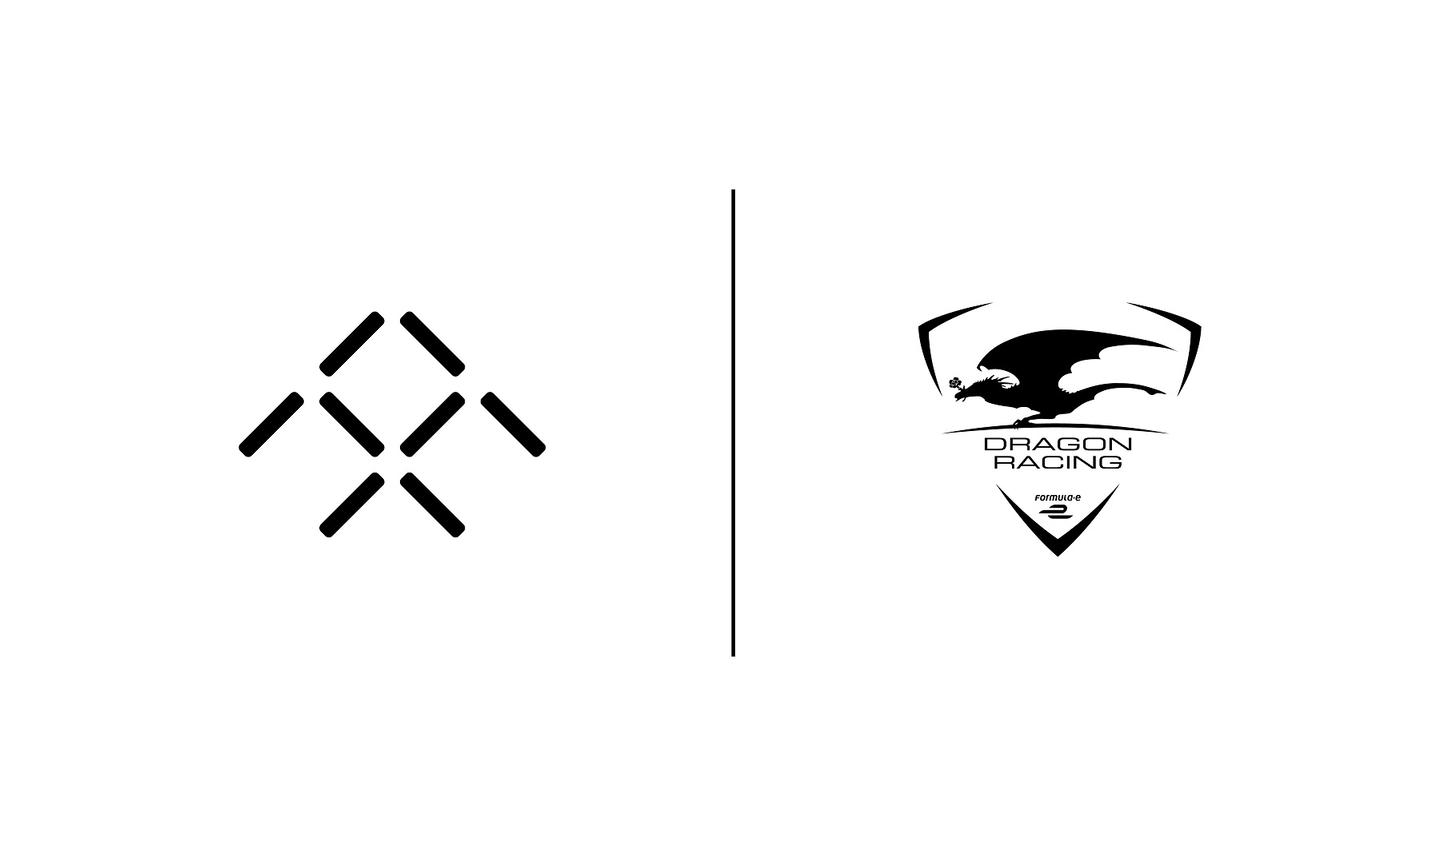 The team's first race as Faraday Future Dragon Racing will be the first race of the third Formula E seasonin Hong Kong on October 9th